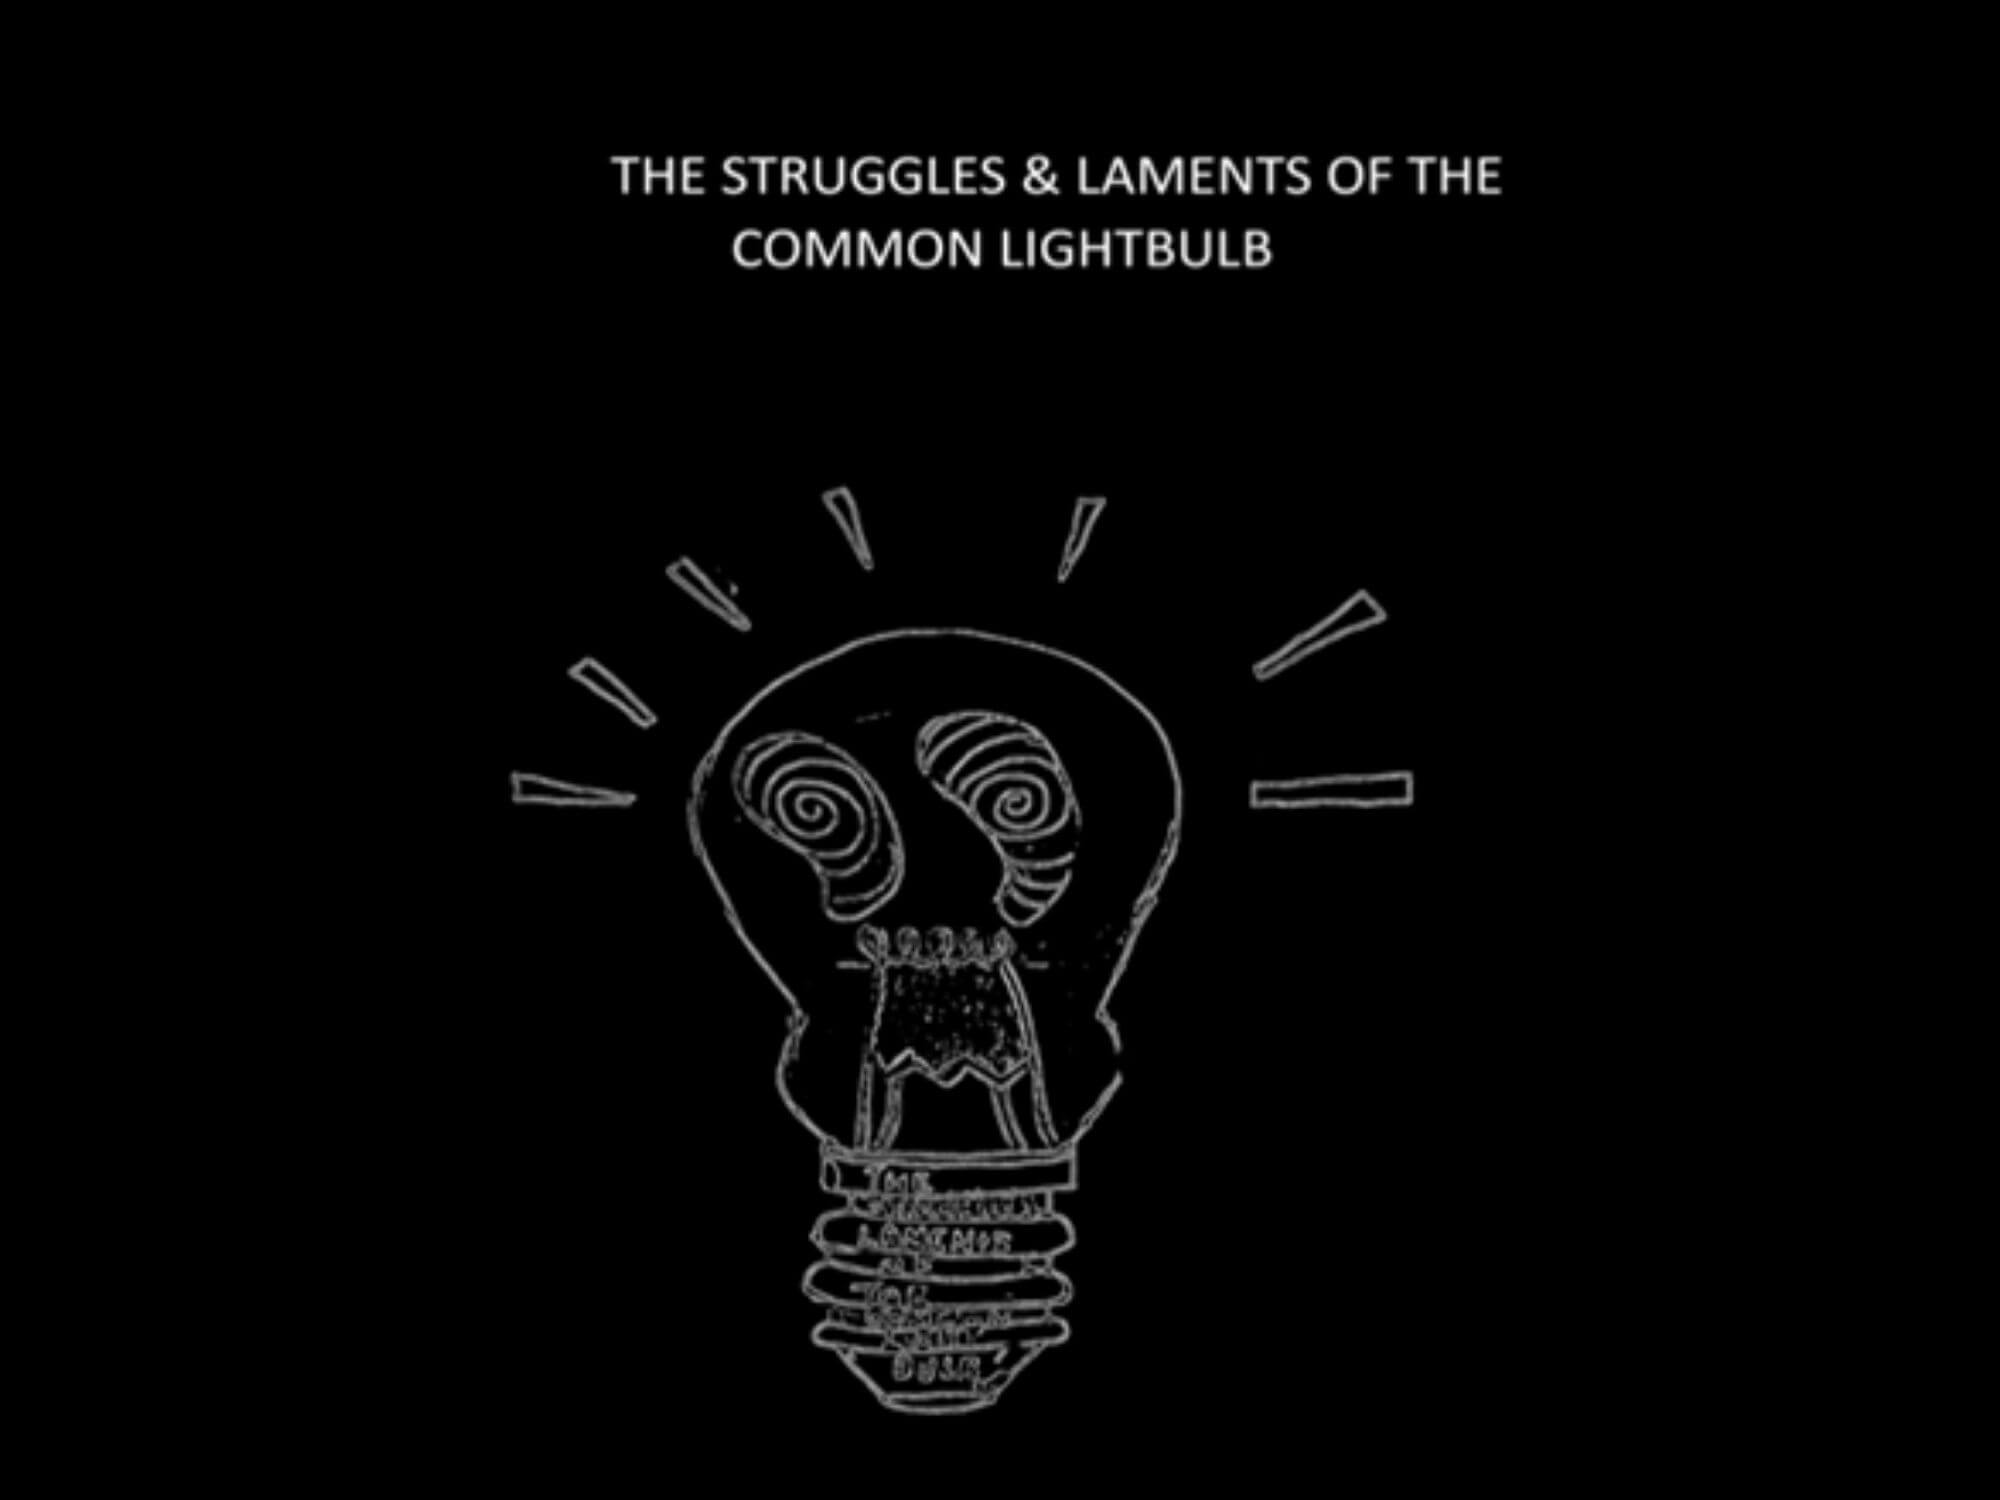 The Struggles and Laments of the Common Lightbulb by Emily Berry